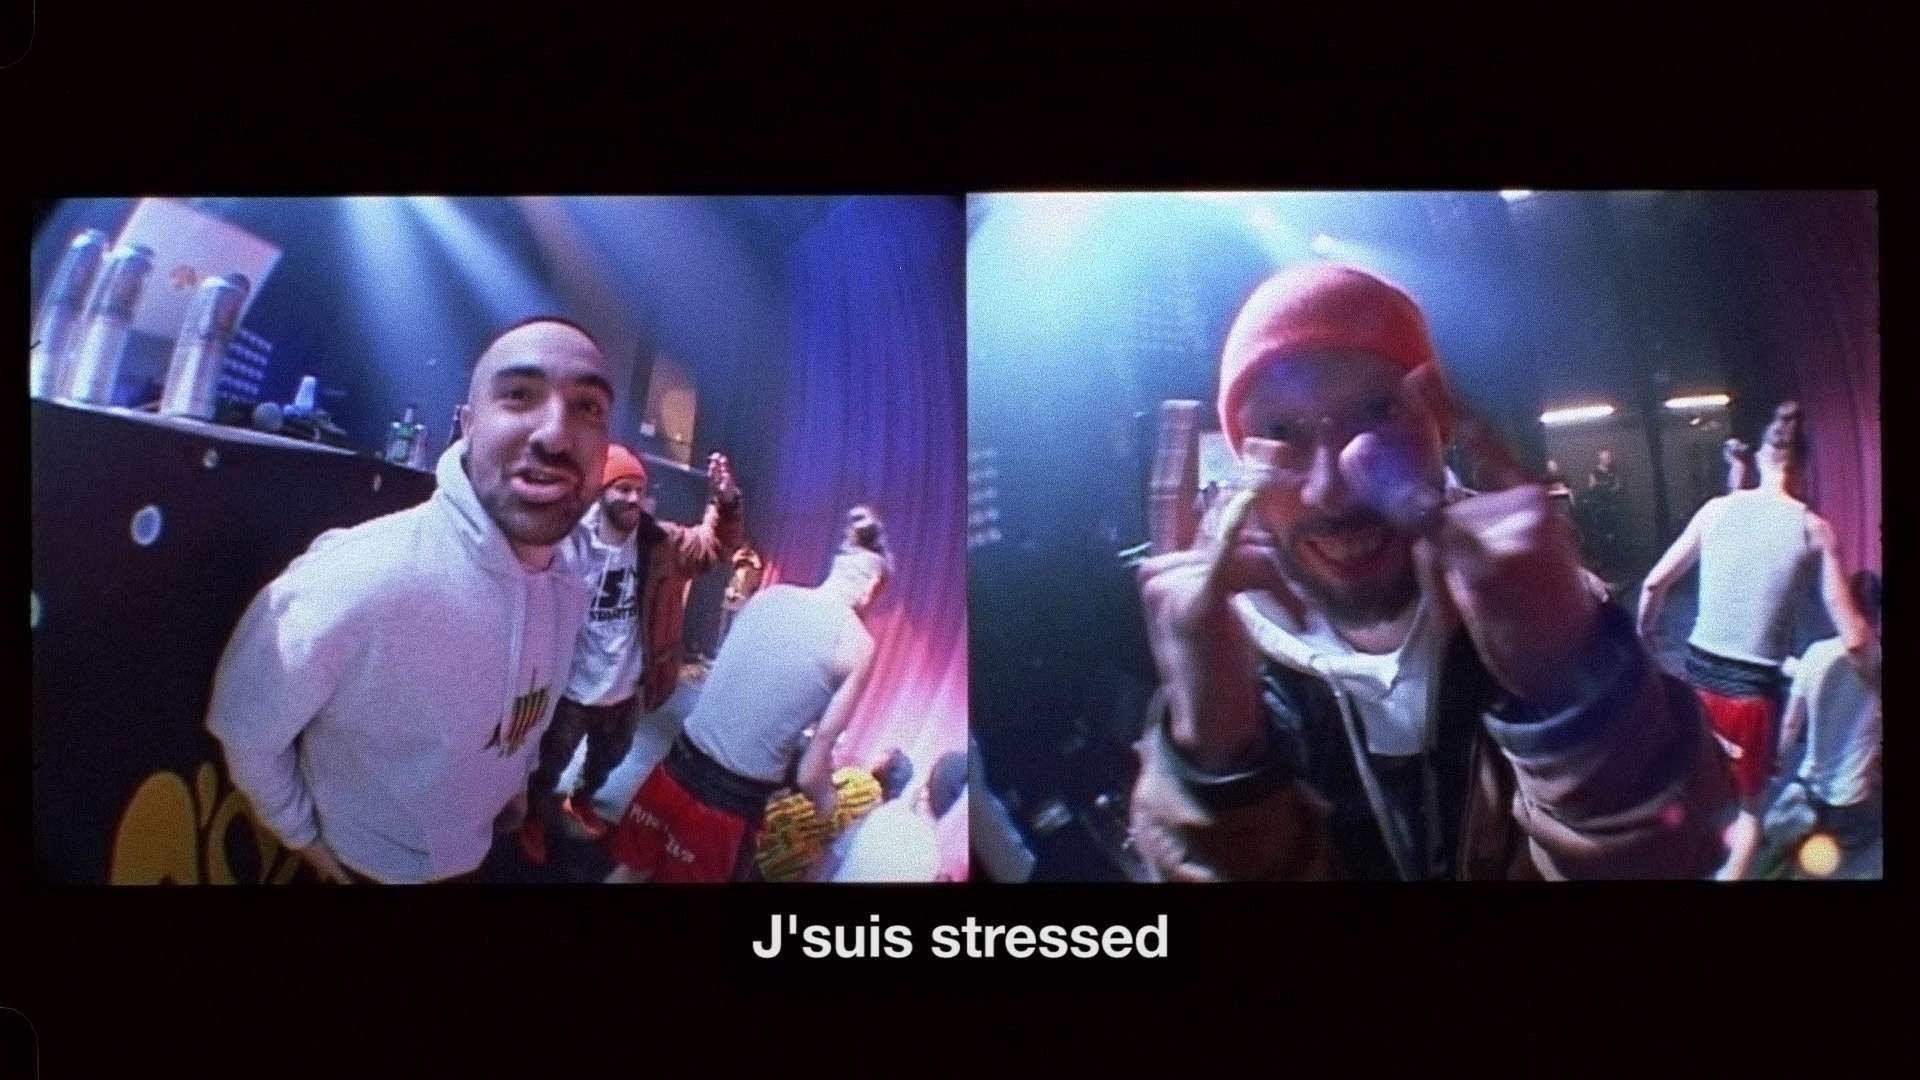 Alaclair Ensemble bandmates being silly in front of camera on stage saying they're stressed for L'Osstidfilm documentary filmed by Vincent Ruel-Cote from Les Gamins about L'Osstidtour